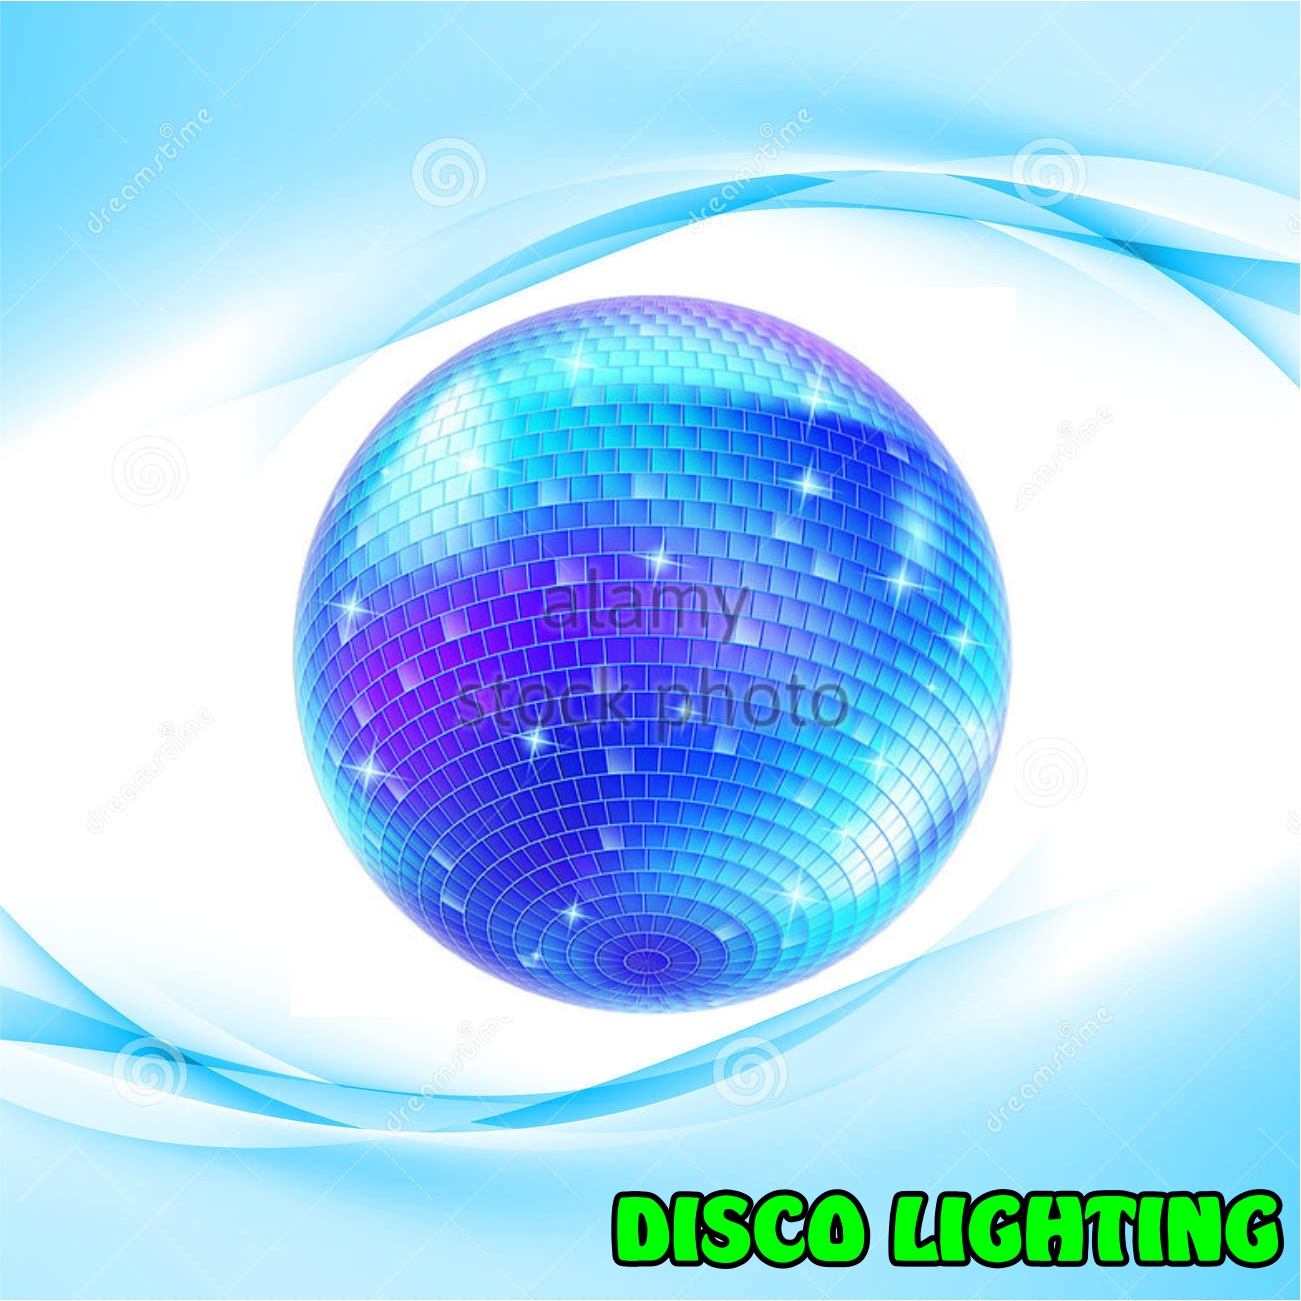 CLICK ME  DISCO LIGHTING LED LAZER LASER DJ LIGHTS GRAVITY DURBAN 0315072463 DISCO LIGHTING FOR SALE AT GRAVITY SOUND AND LIGHTING WAREHOUSE DURBAN 0315072736